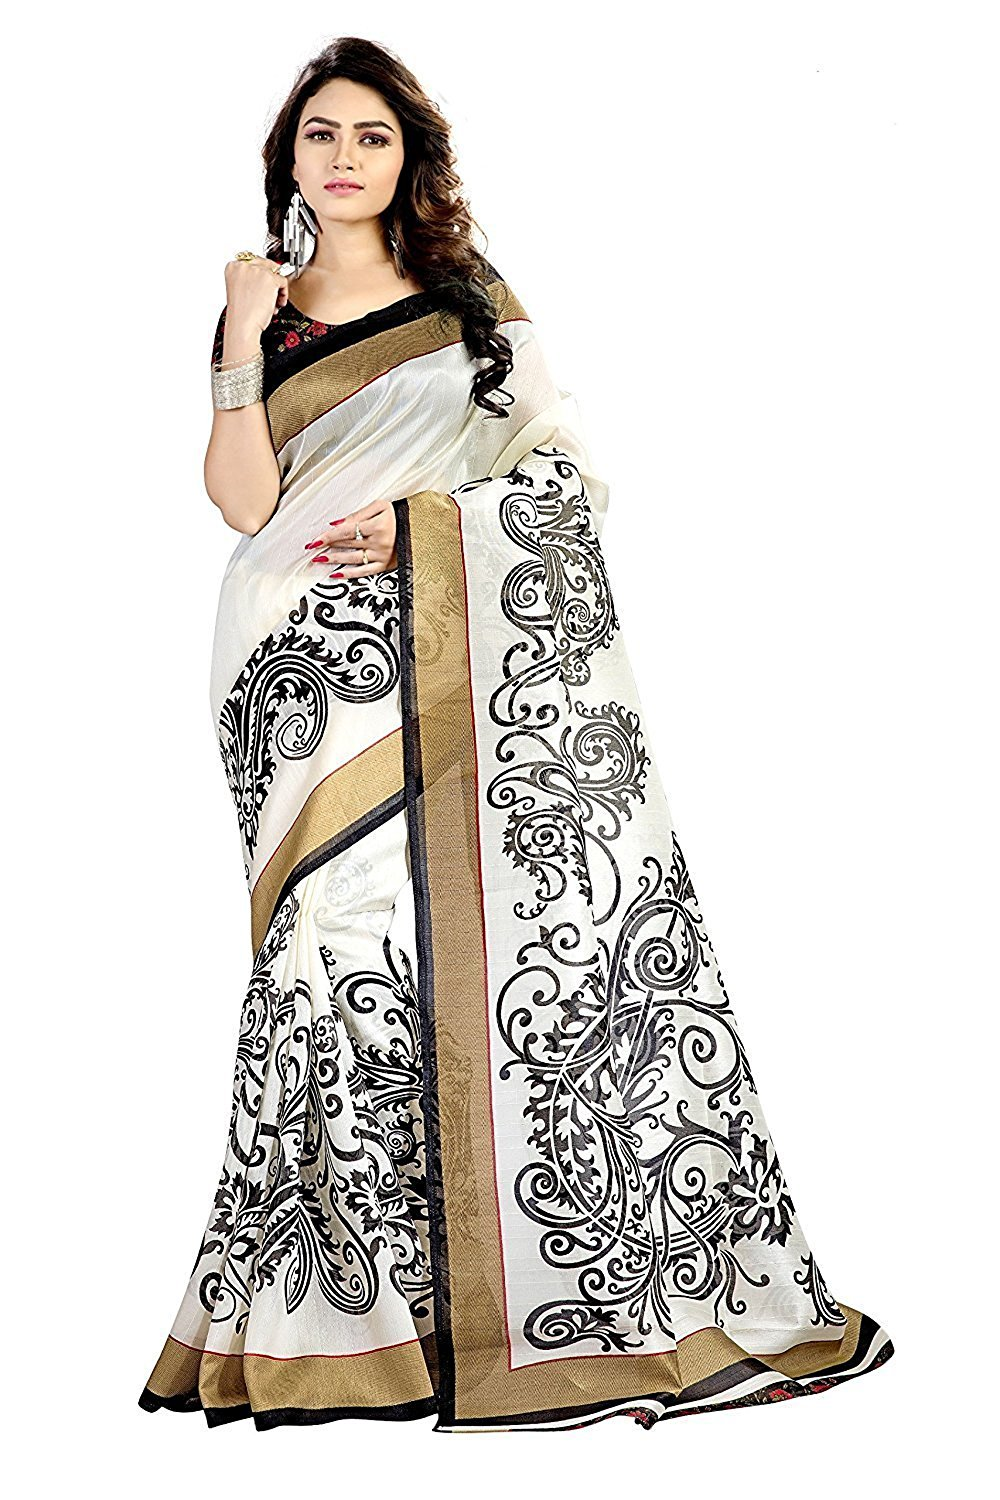 Devpriya Fashion Womens Cotton Silk Saree With Blouse Piece